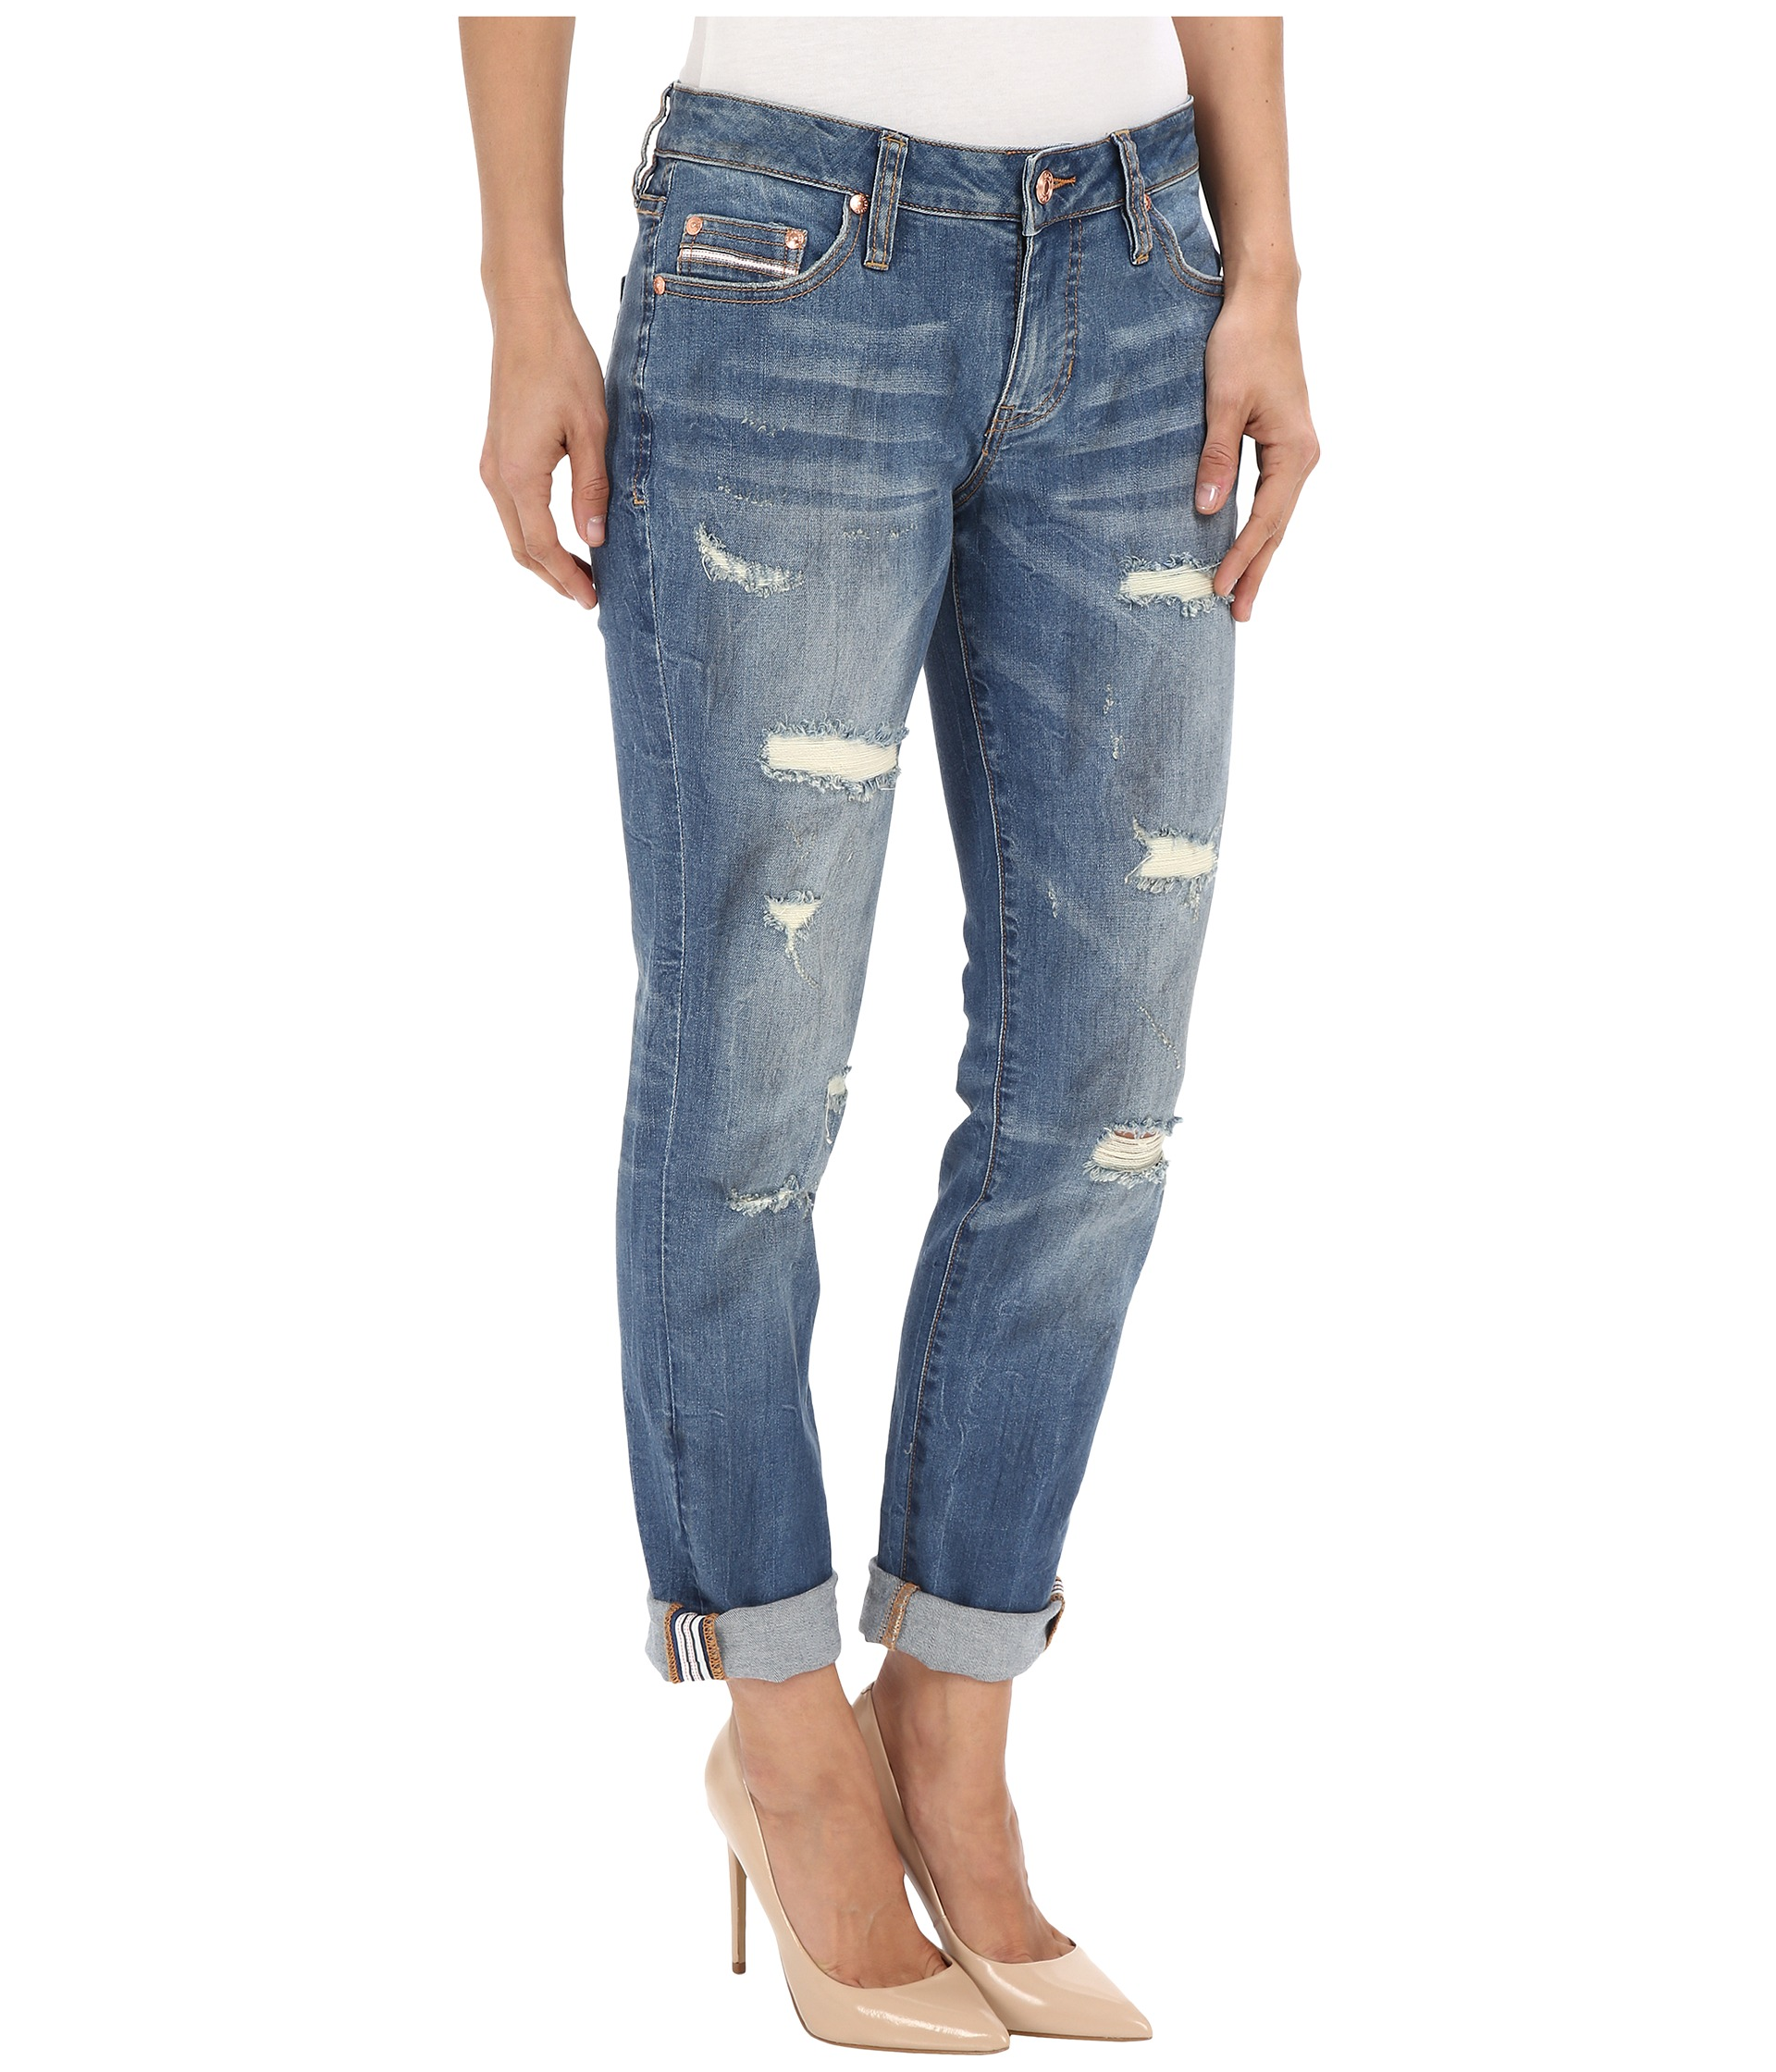 Jag Jeans Alex Boyfriend Capital Denim in Blue Carbon - Zappos.com Free Shipping BOTH Ways